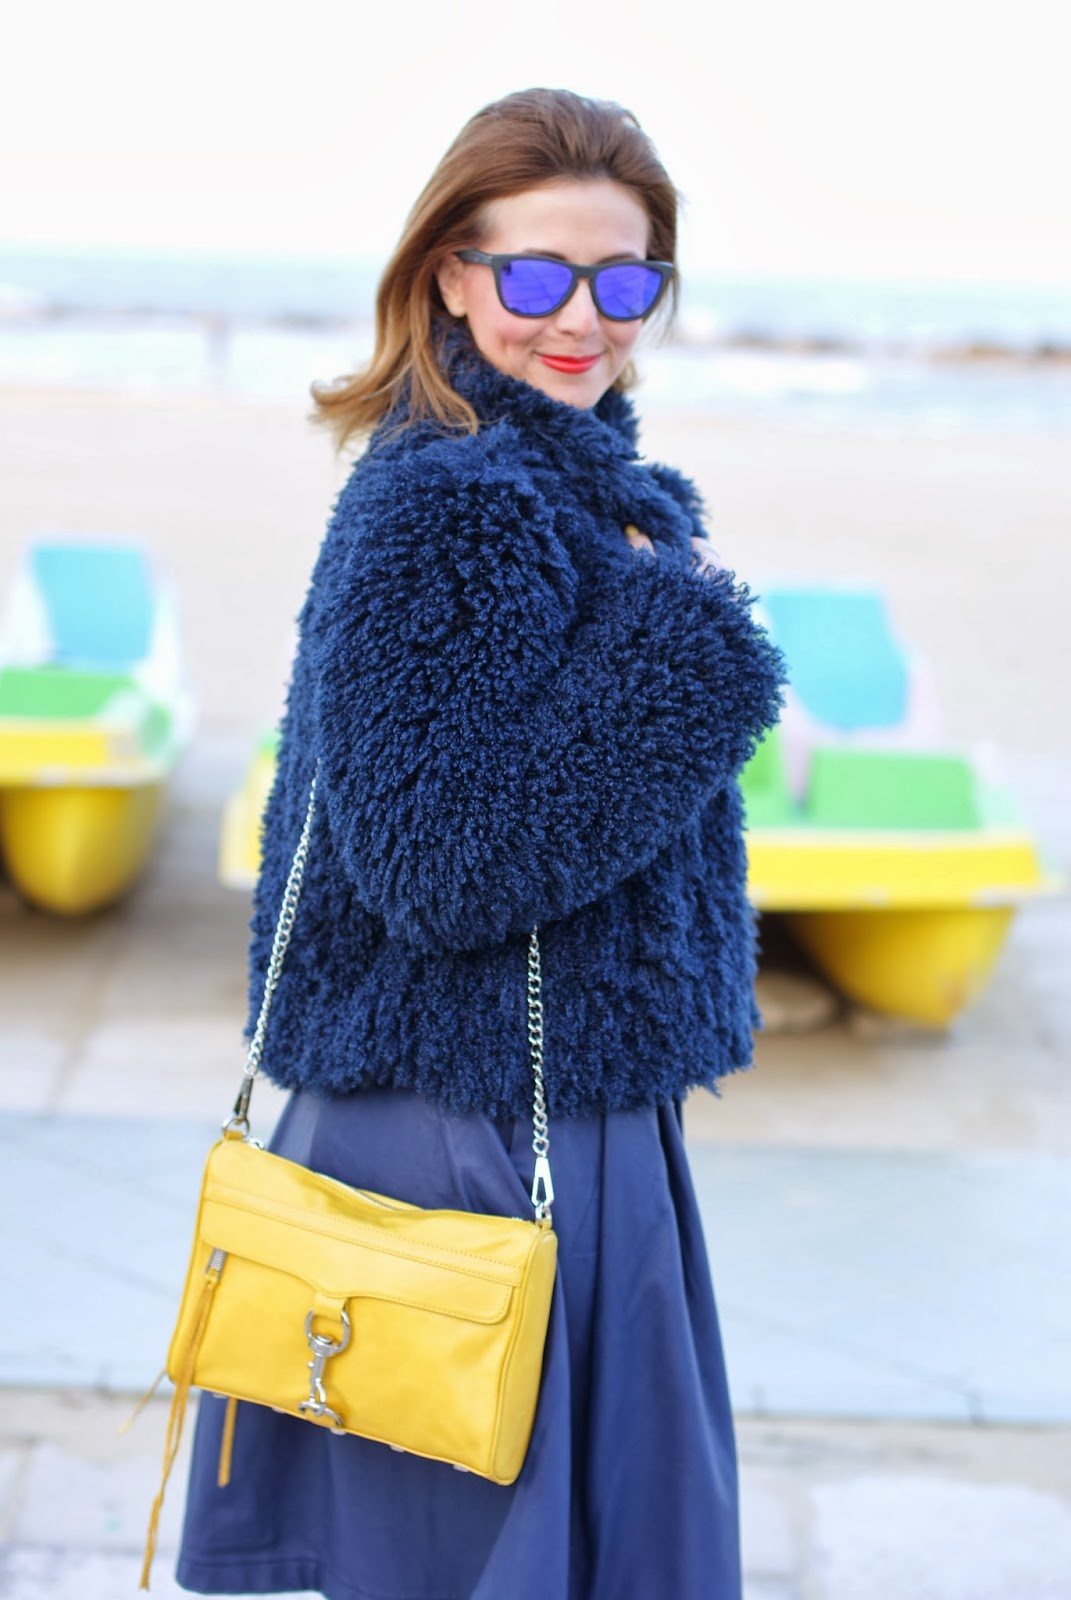 So Allure faux fur jacket, Rebecca Minkoff yellow mac clutch, Fashion and Cookies, fashion blogger